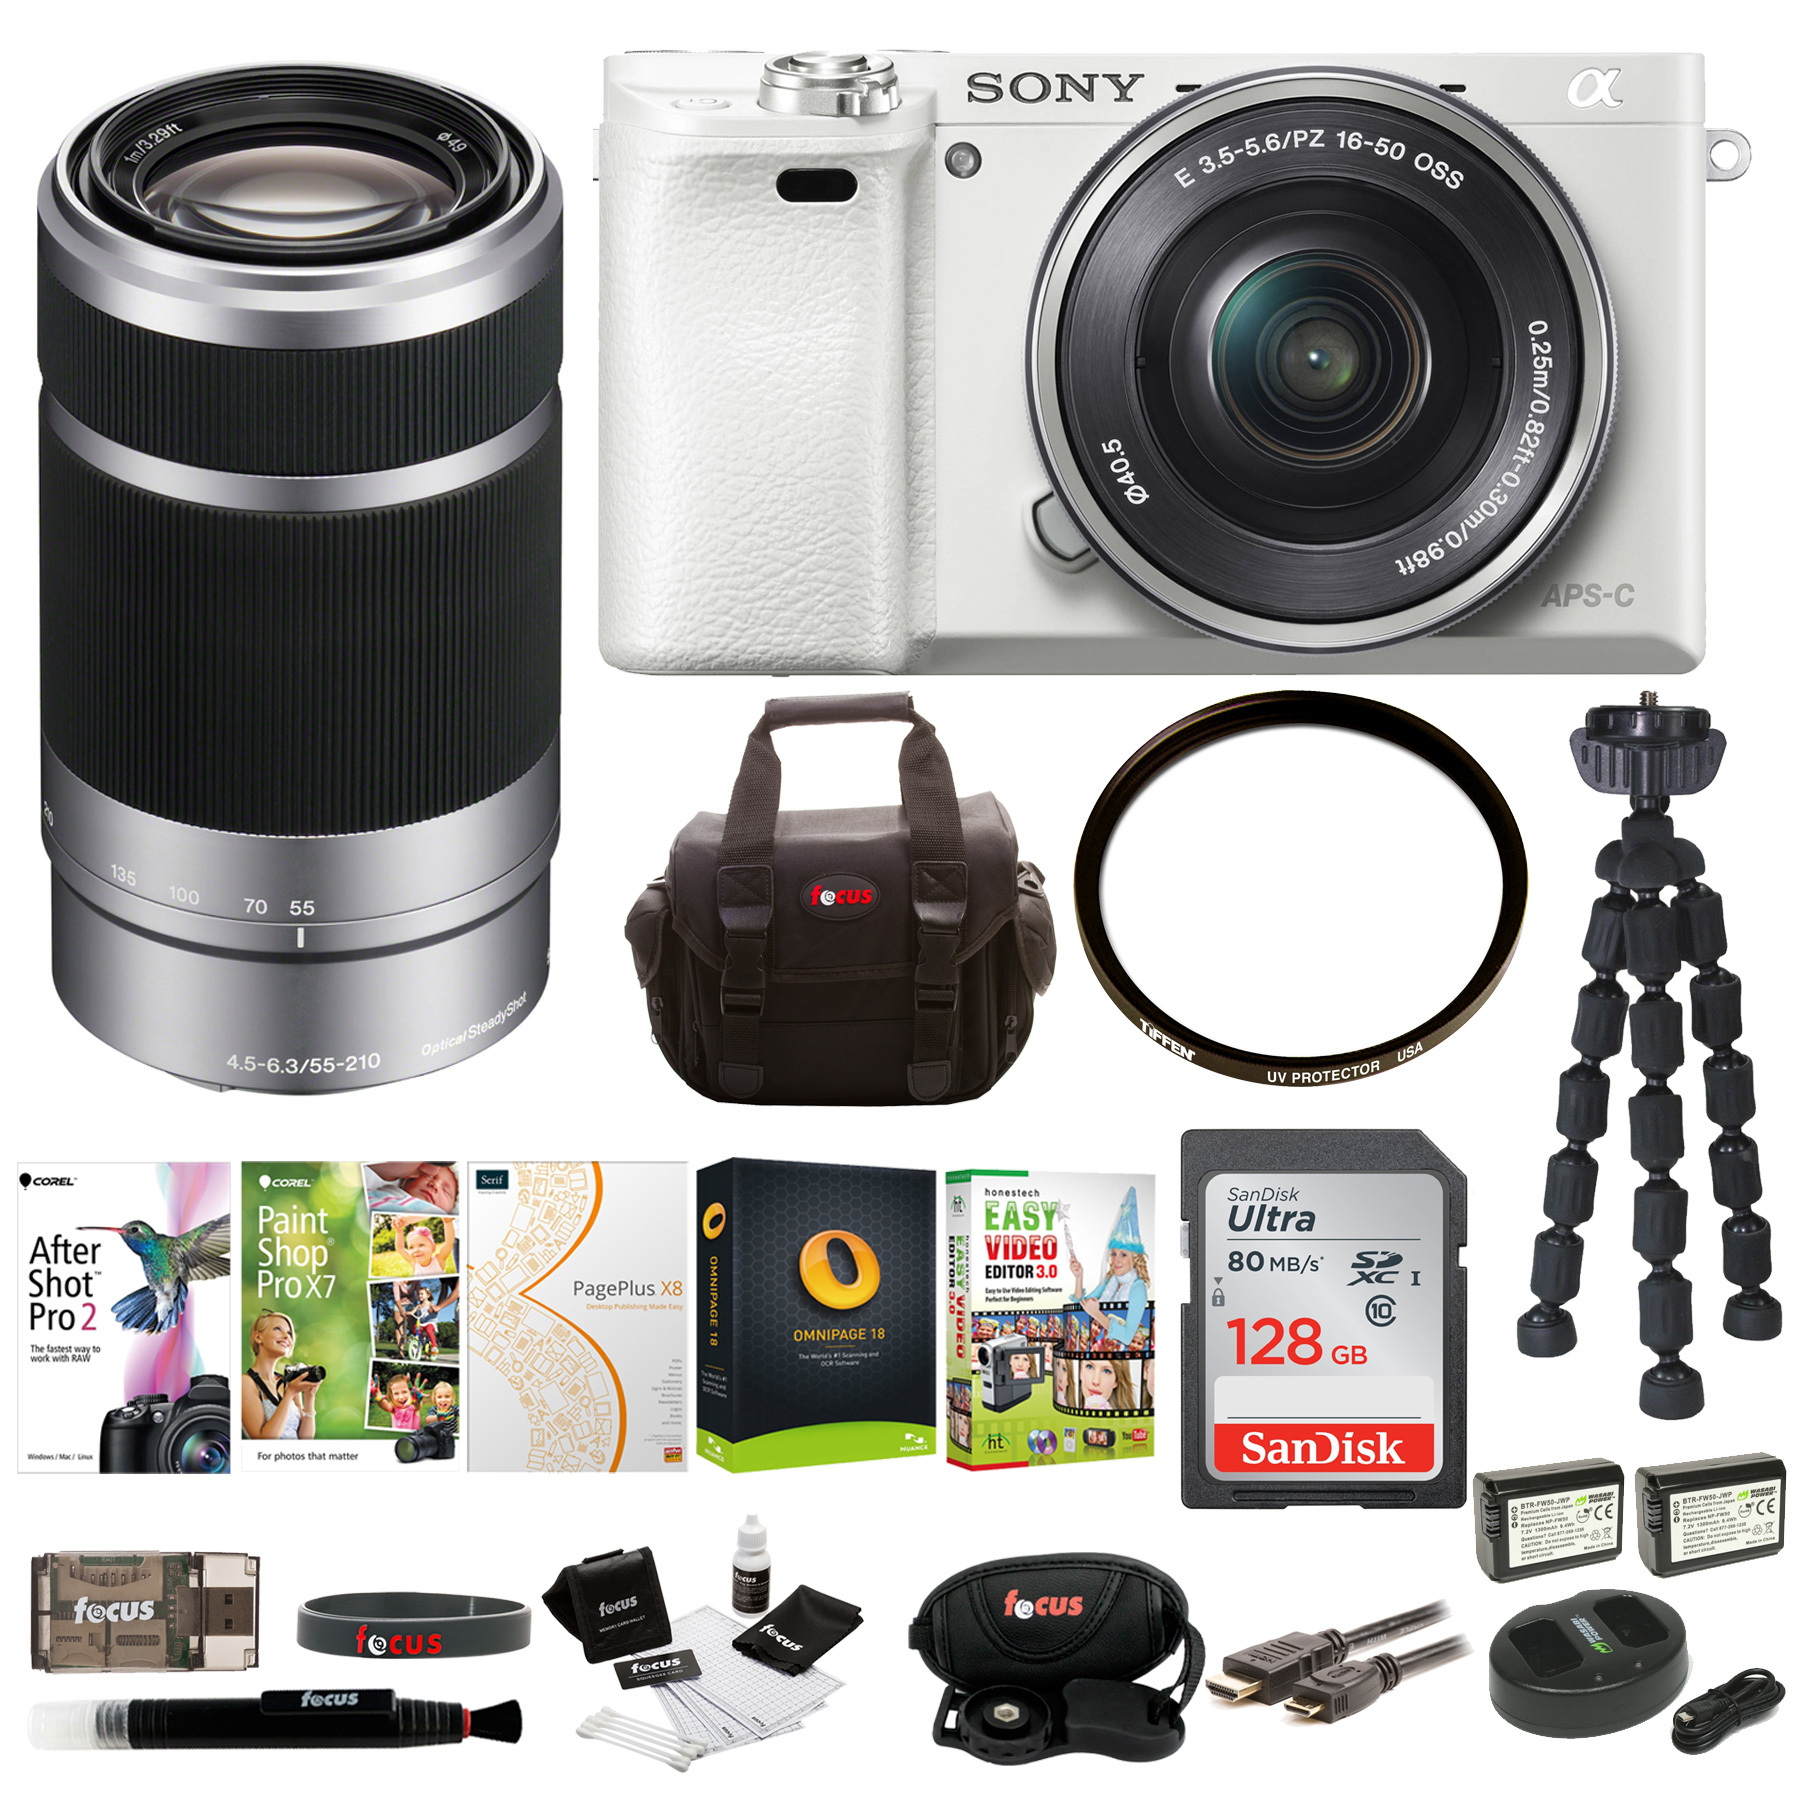 Sony Alpha a6000 Camera w/ 16-50mm Lens (White) + 55-210mm Lens + 128GB Card + Software Suite + Accessory Bundle